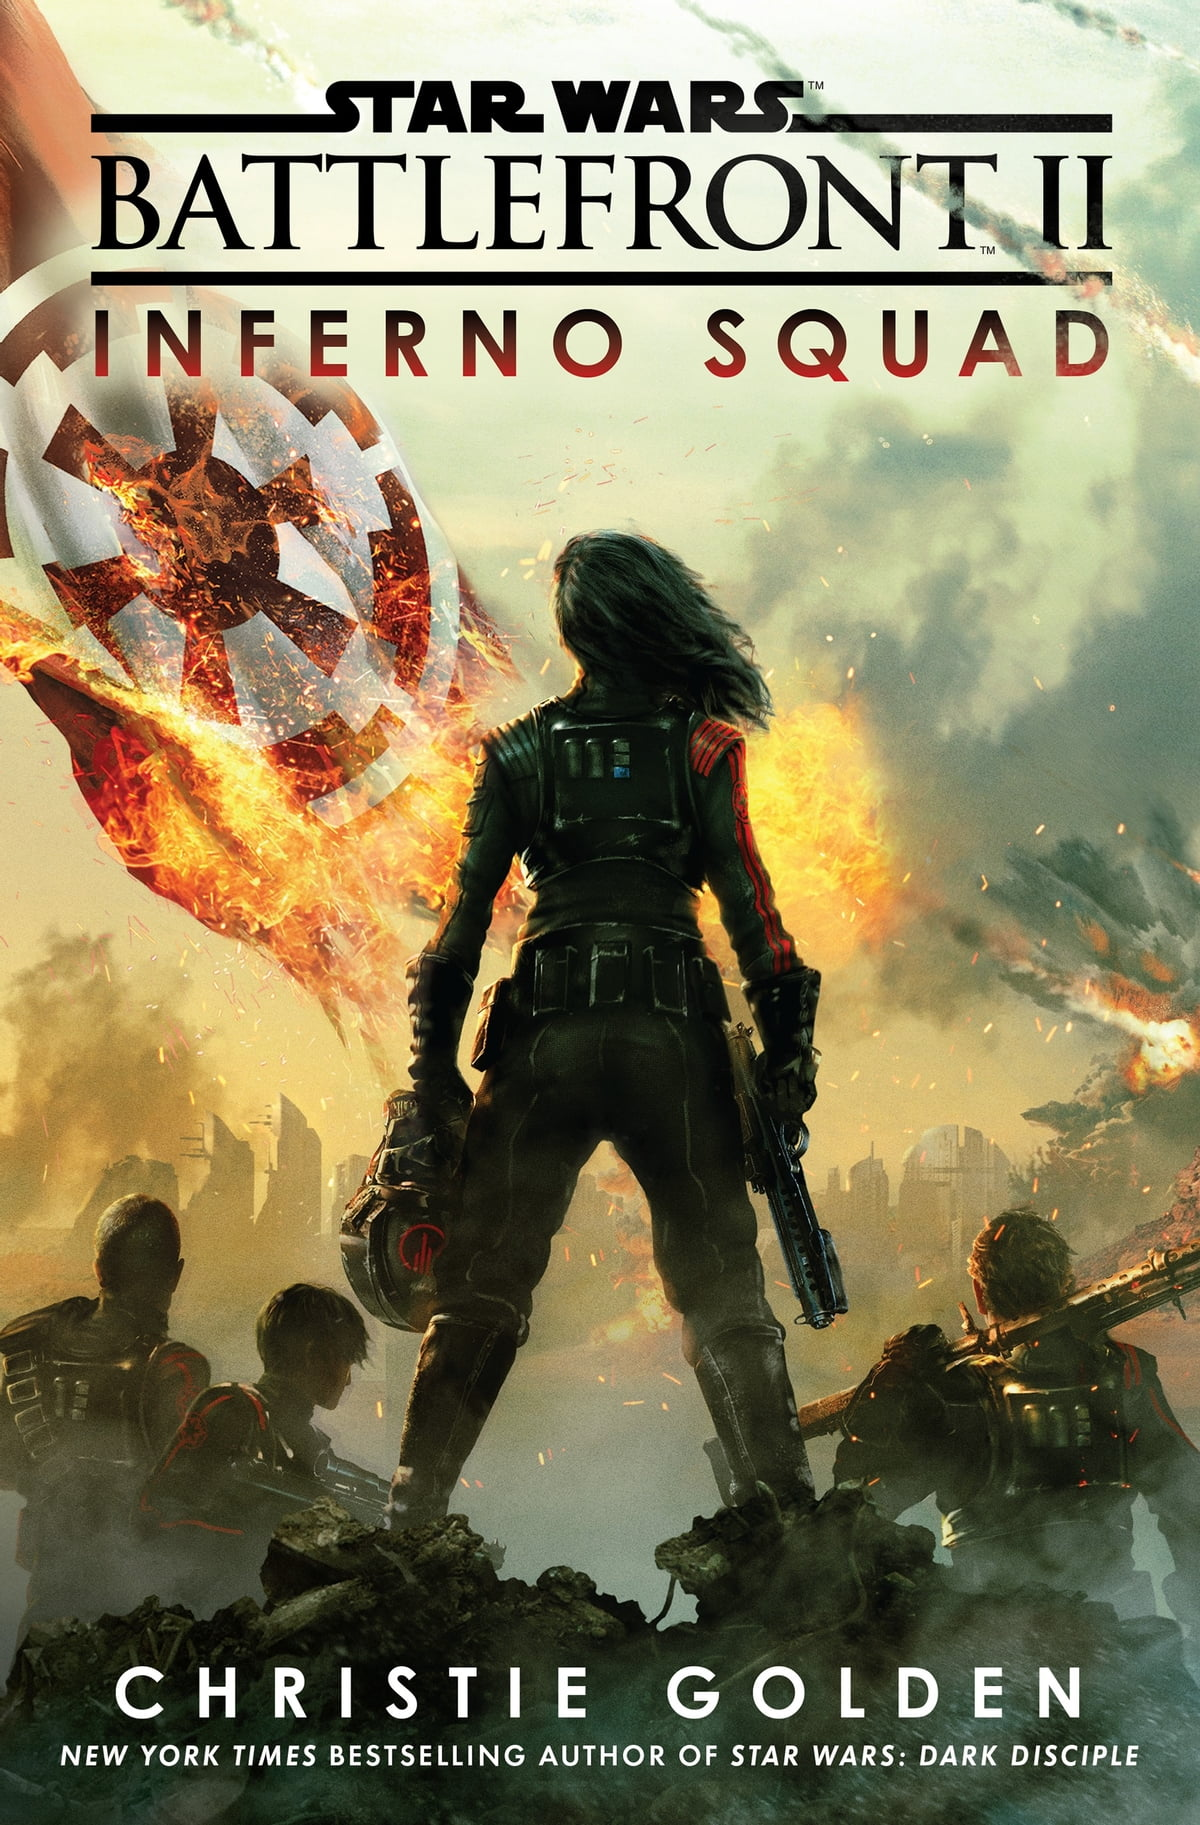 Catalyst star wars ebook by james luceno 9781101967010 battlefront ii inferno squad star wars ebook by christie golden fandeluxe Document